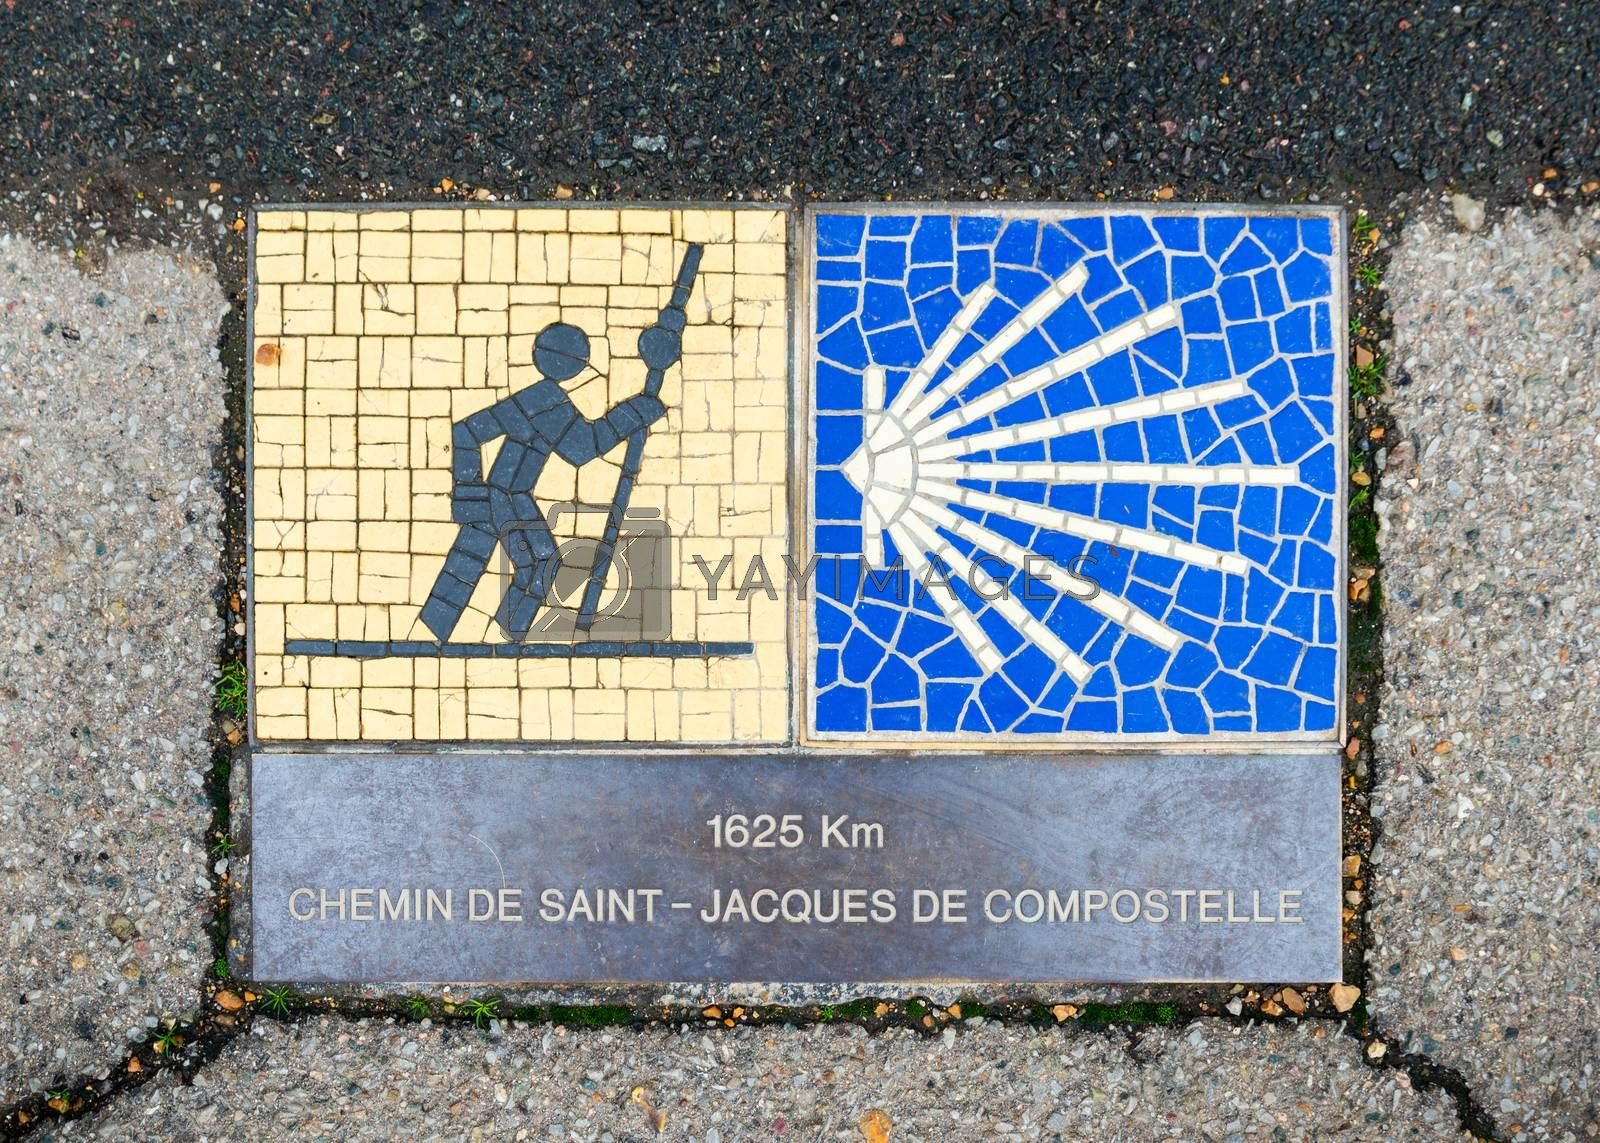 Camino de Santiago pilgrimage sign in Chartres, France. The sign reads: 1625 km Way of St James.